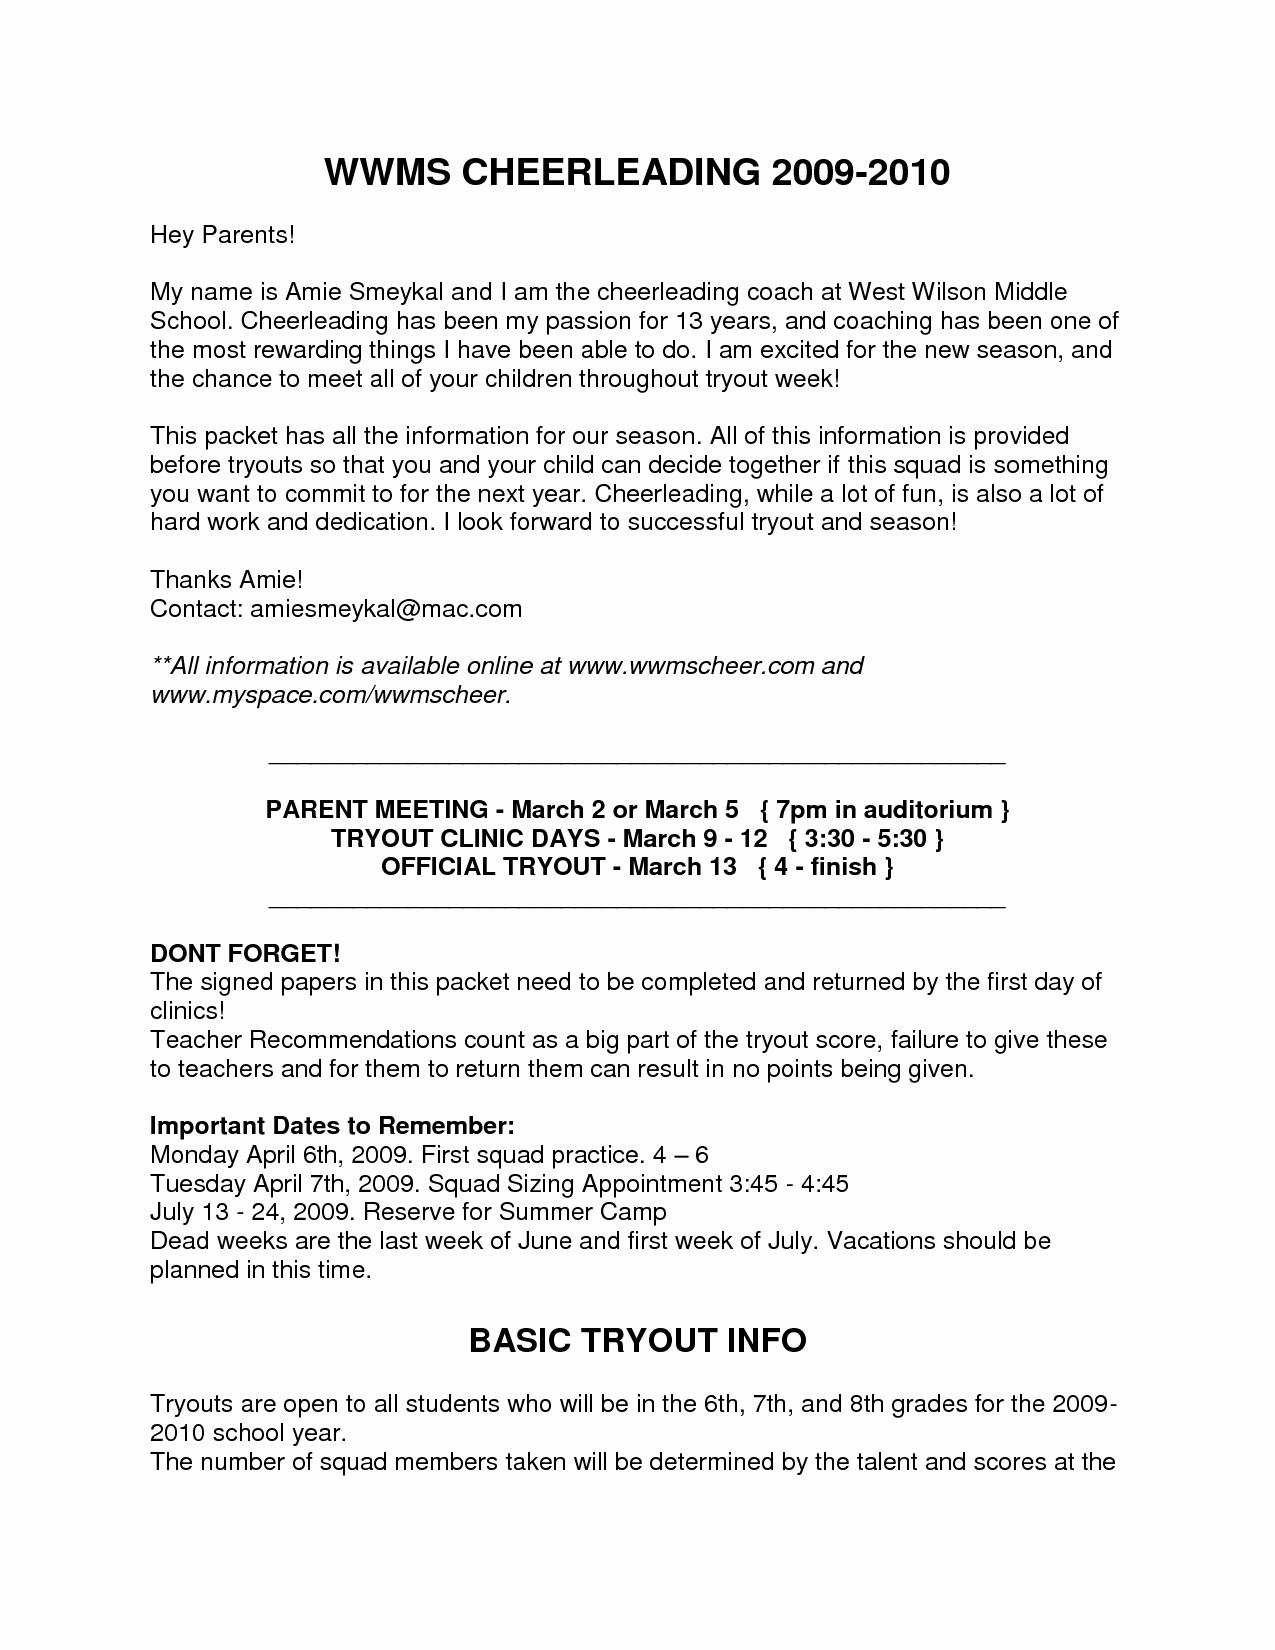 student teacher letter to parents template best resume gallery